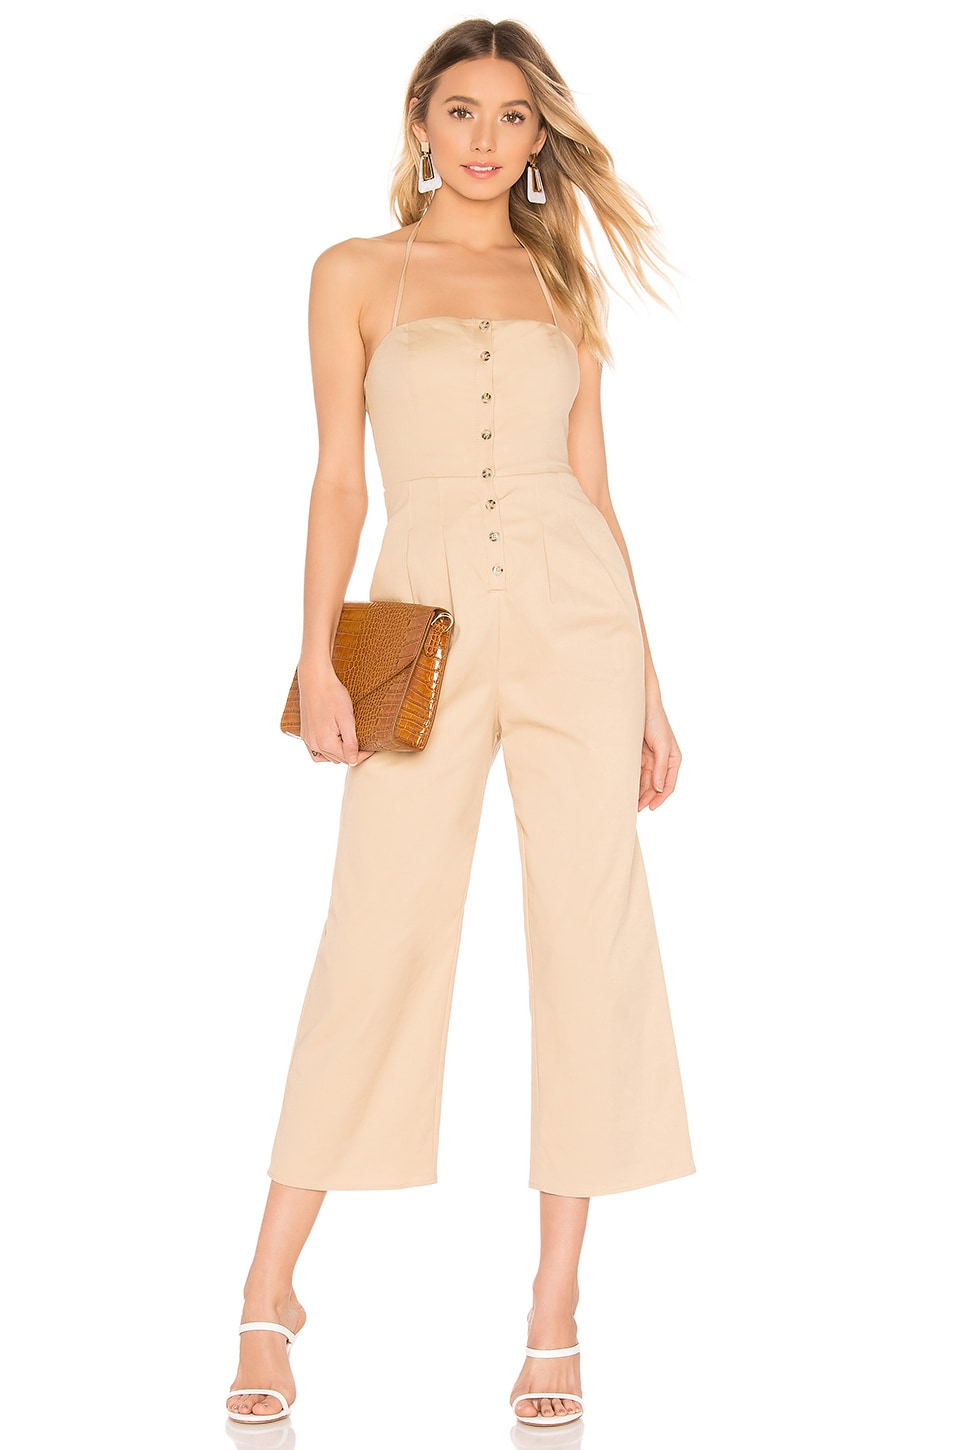 MAJORELLE Casablanca Jumpsuit in Khaki Tan